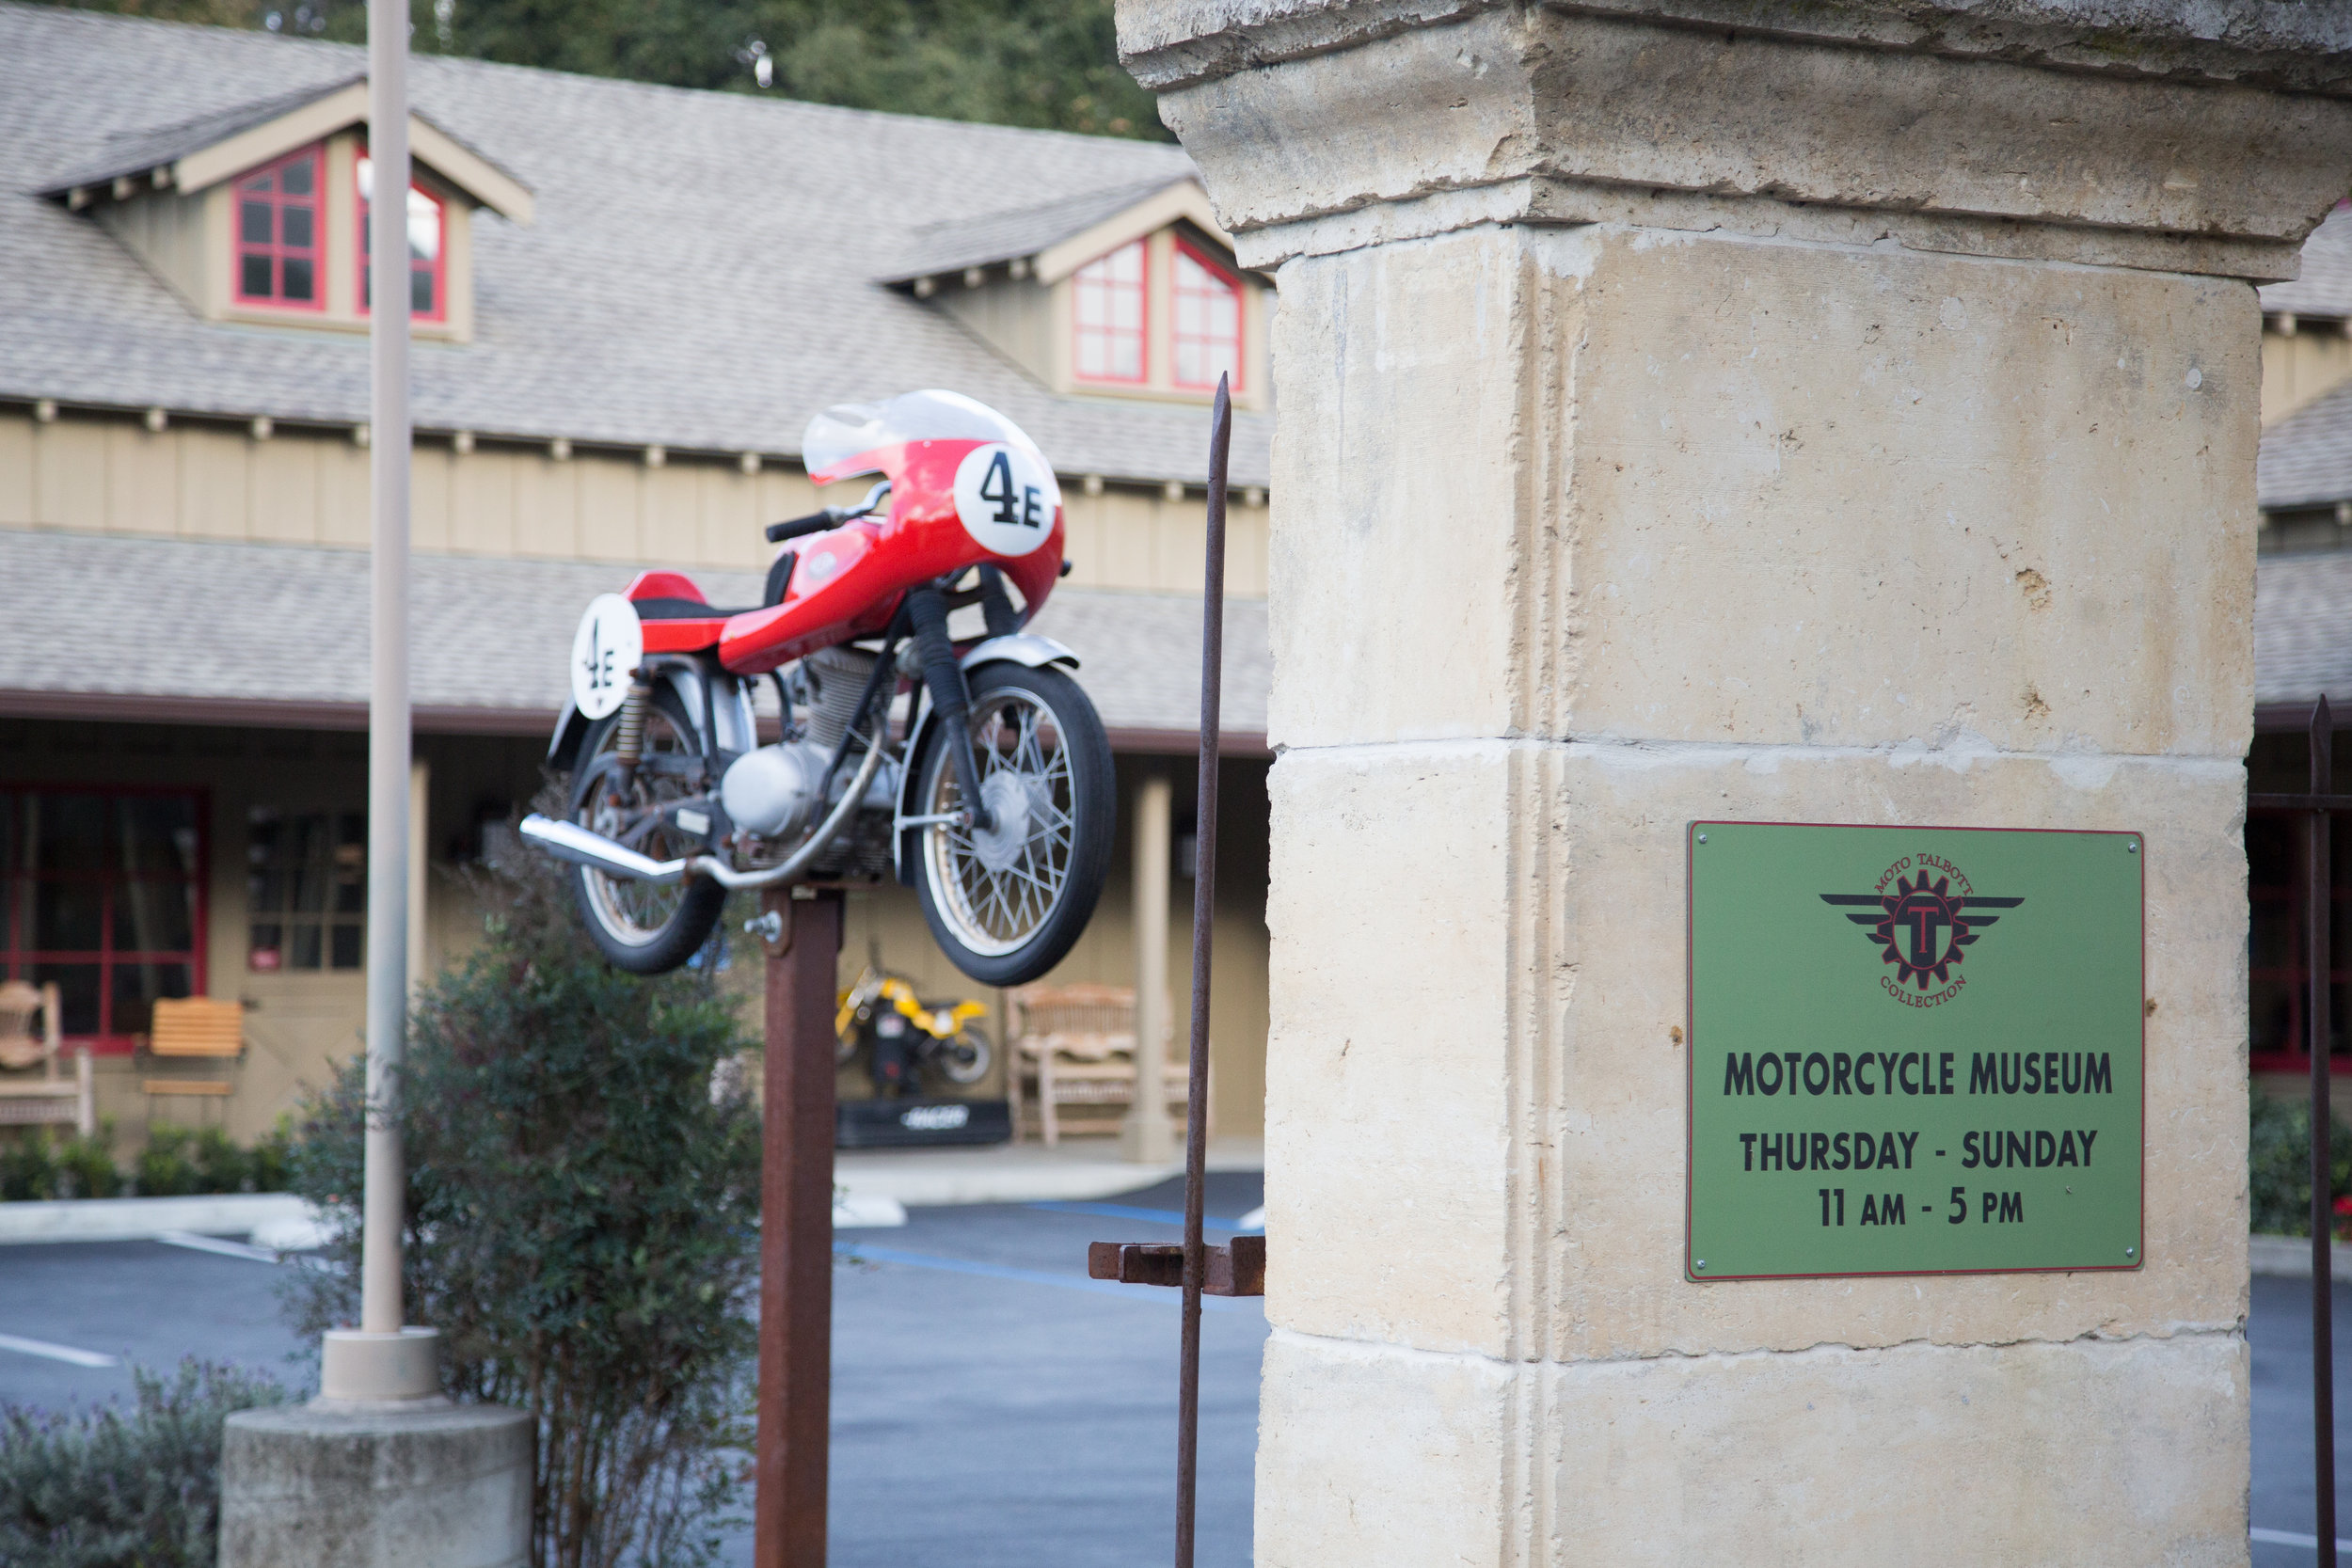 Moto Talbott Collection - Moto Talbott museum in Carmel, California, features more than 170 iconic motorcycles from 16 countries, and is located on one of Northern California's most beautiful motorcycle roads.